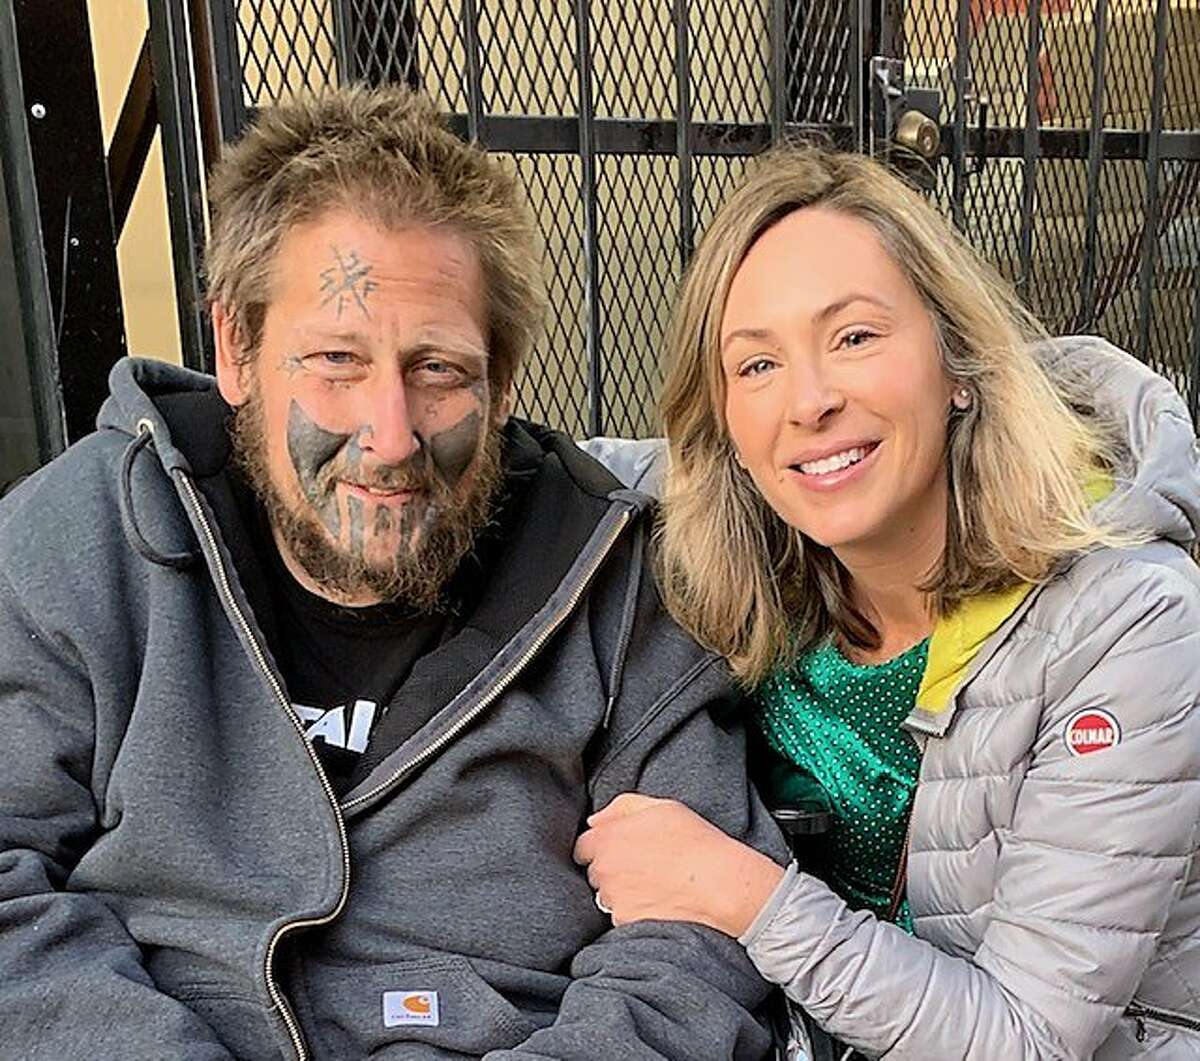 Ian Carrier and his sister, April Slone, in San Francisco in October, 2019.